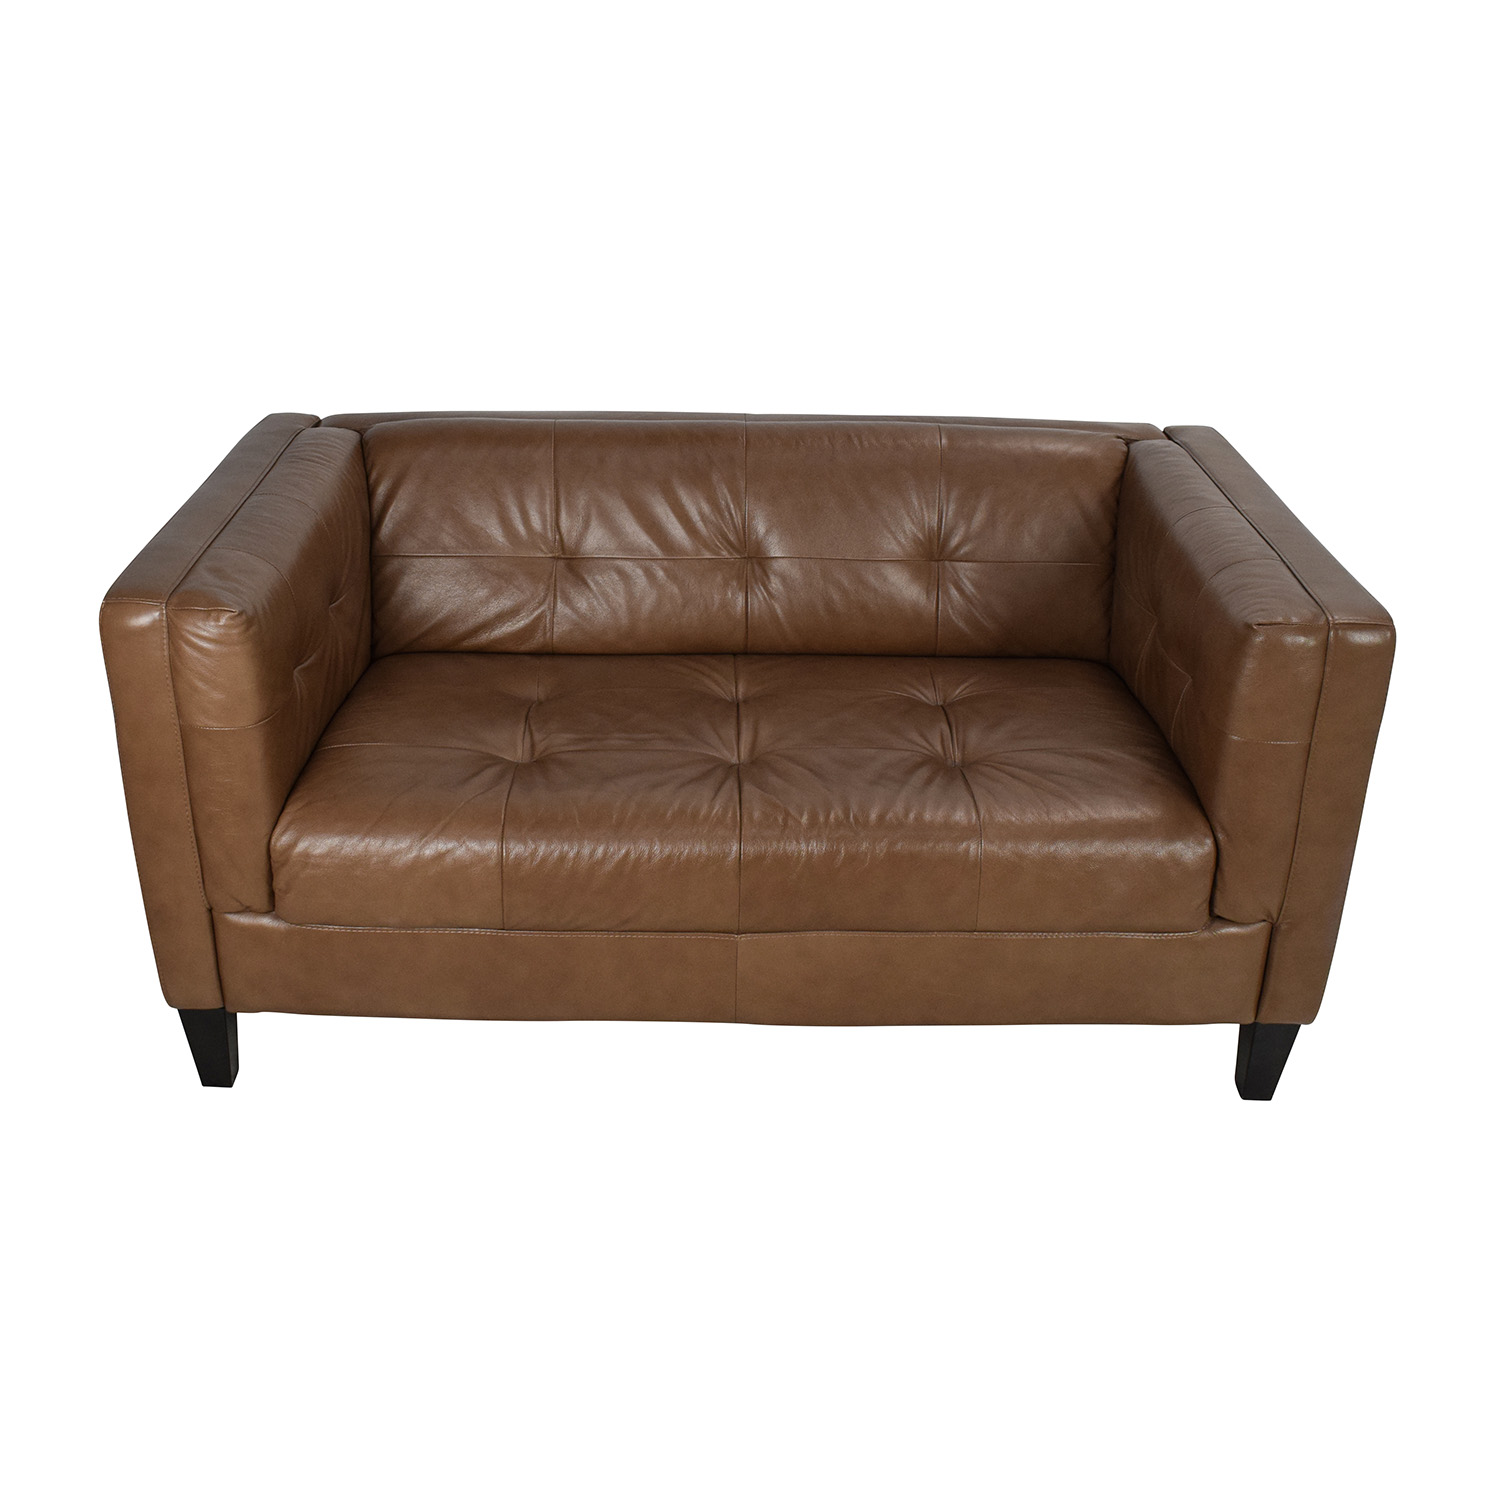 Raymour & Flanigan Raymour & Flanigan Bartolo Leather Loveseat Brown